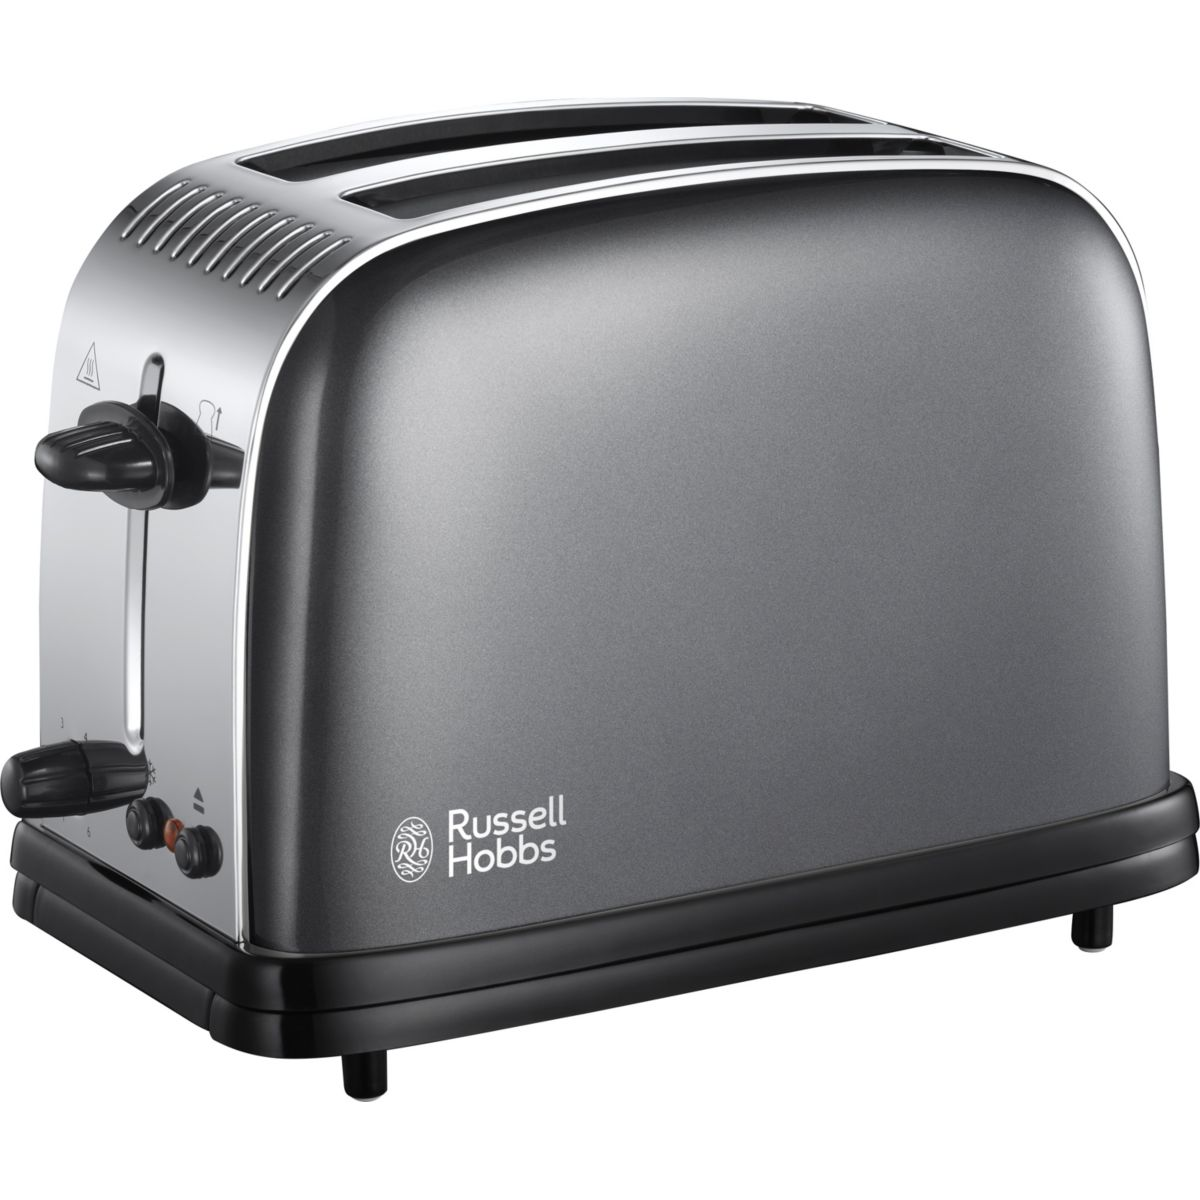 Grille-pain RUSSELL HOBBS Colours Plus 23332-56 Gris